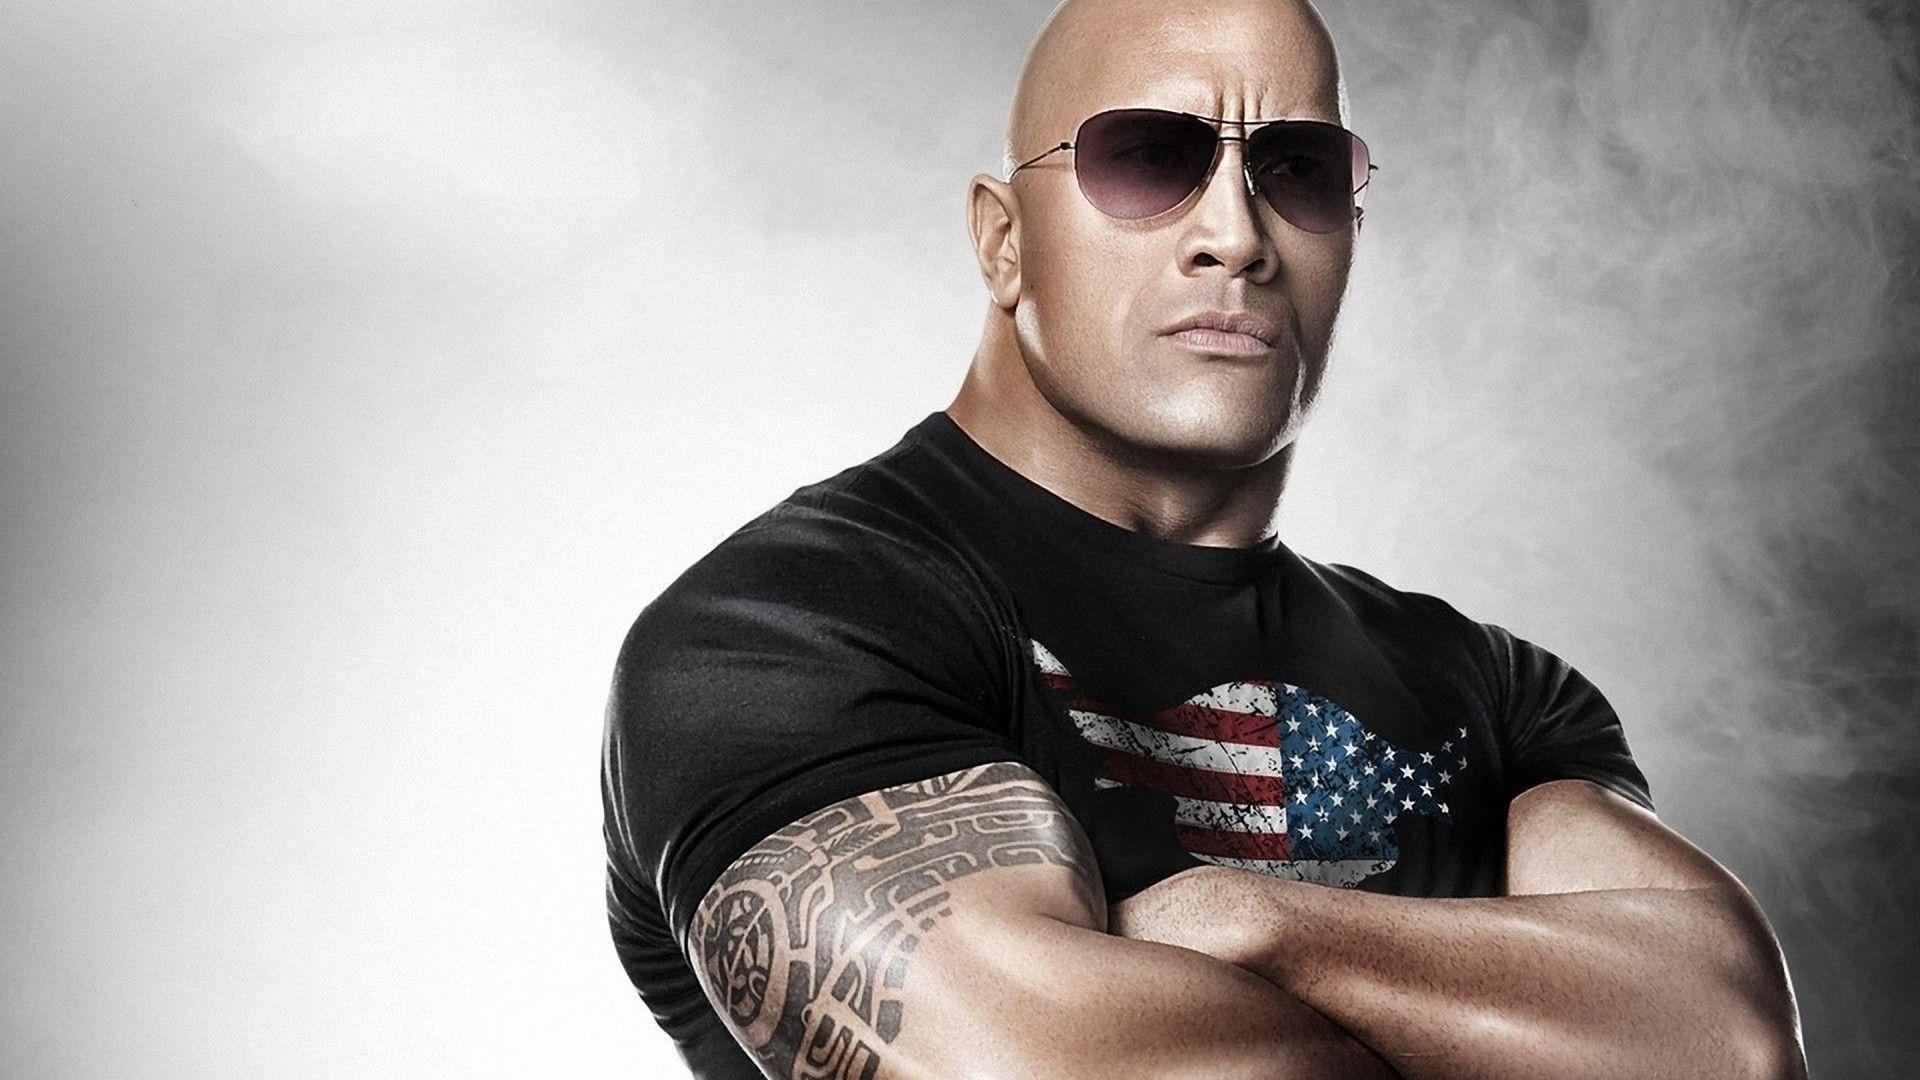 Full HD 1080p Dwayne johnson Wallpapers HD, Desktop Backgrounds .